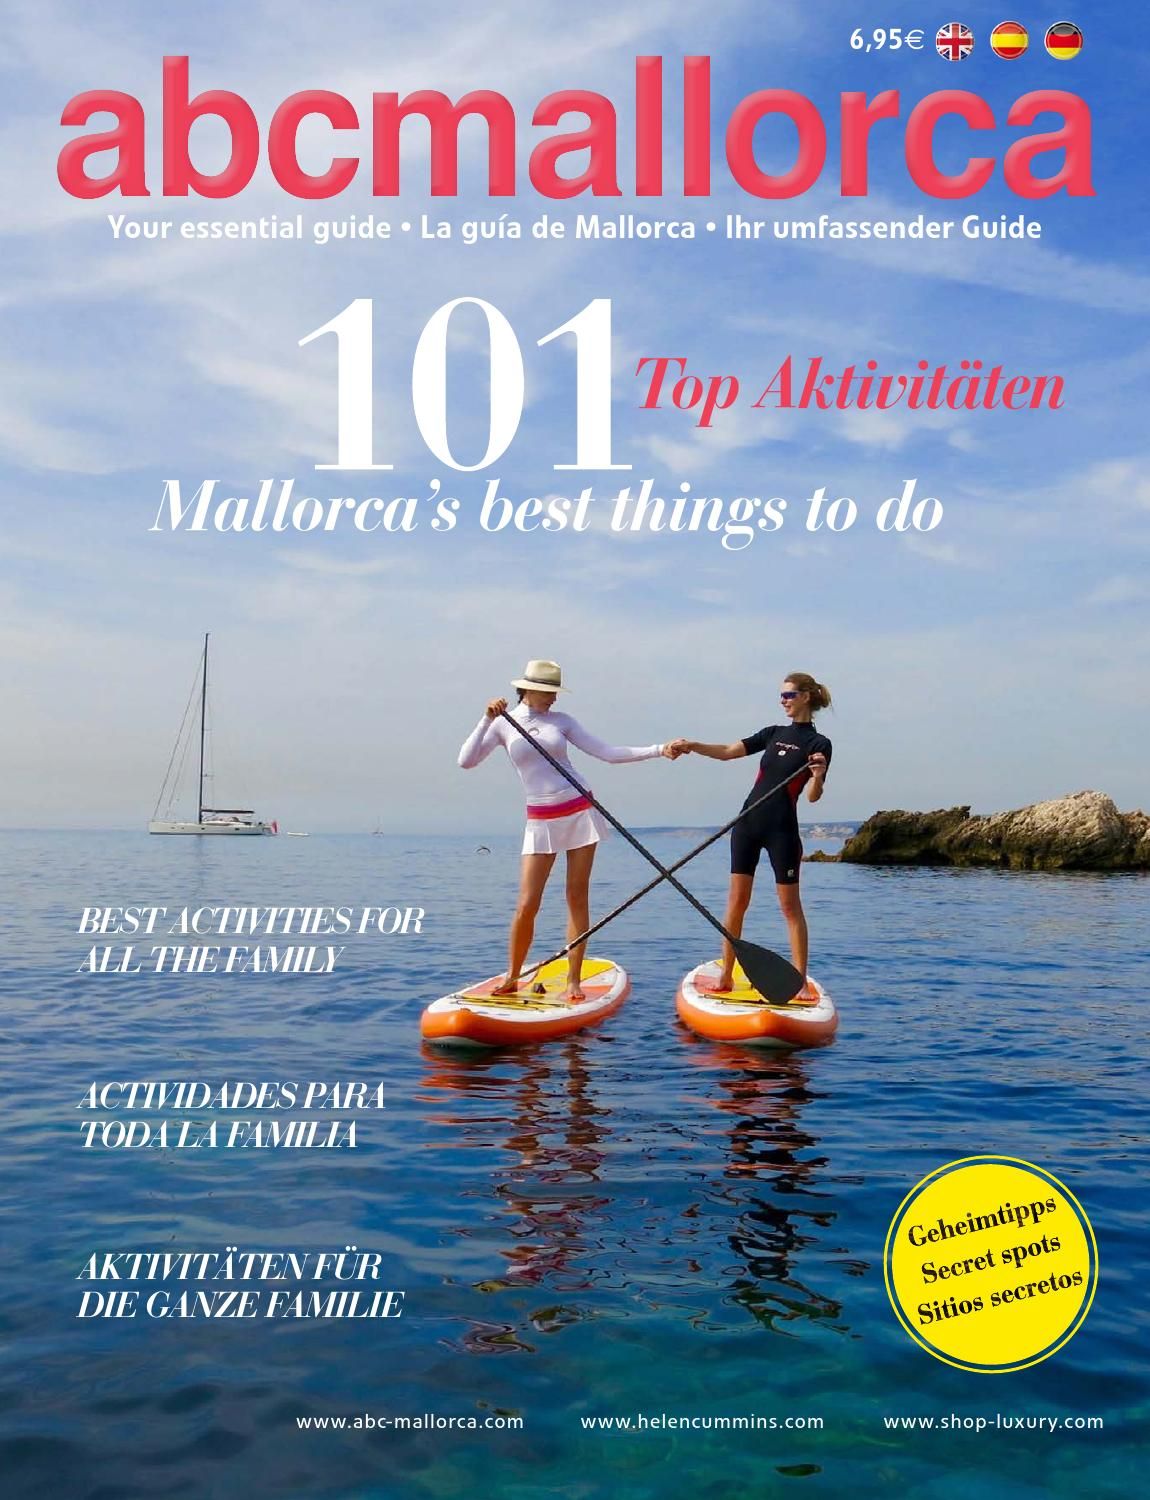 86th Abcmallorca 101 Mallorca S Best Things To Do Guide 2015 2016  # Muebles Hermanos Miquel Manacor